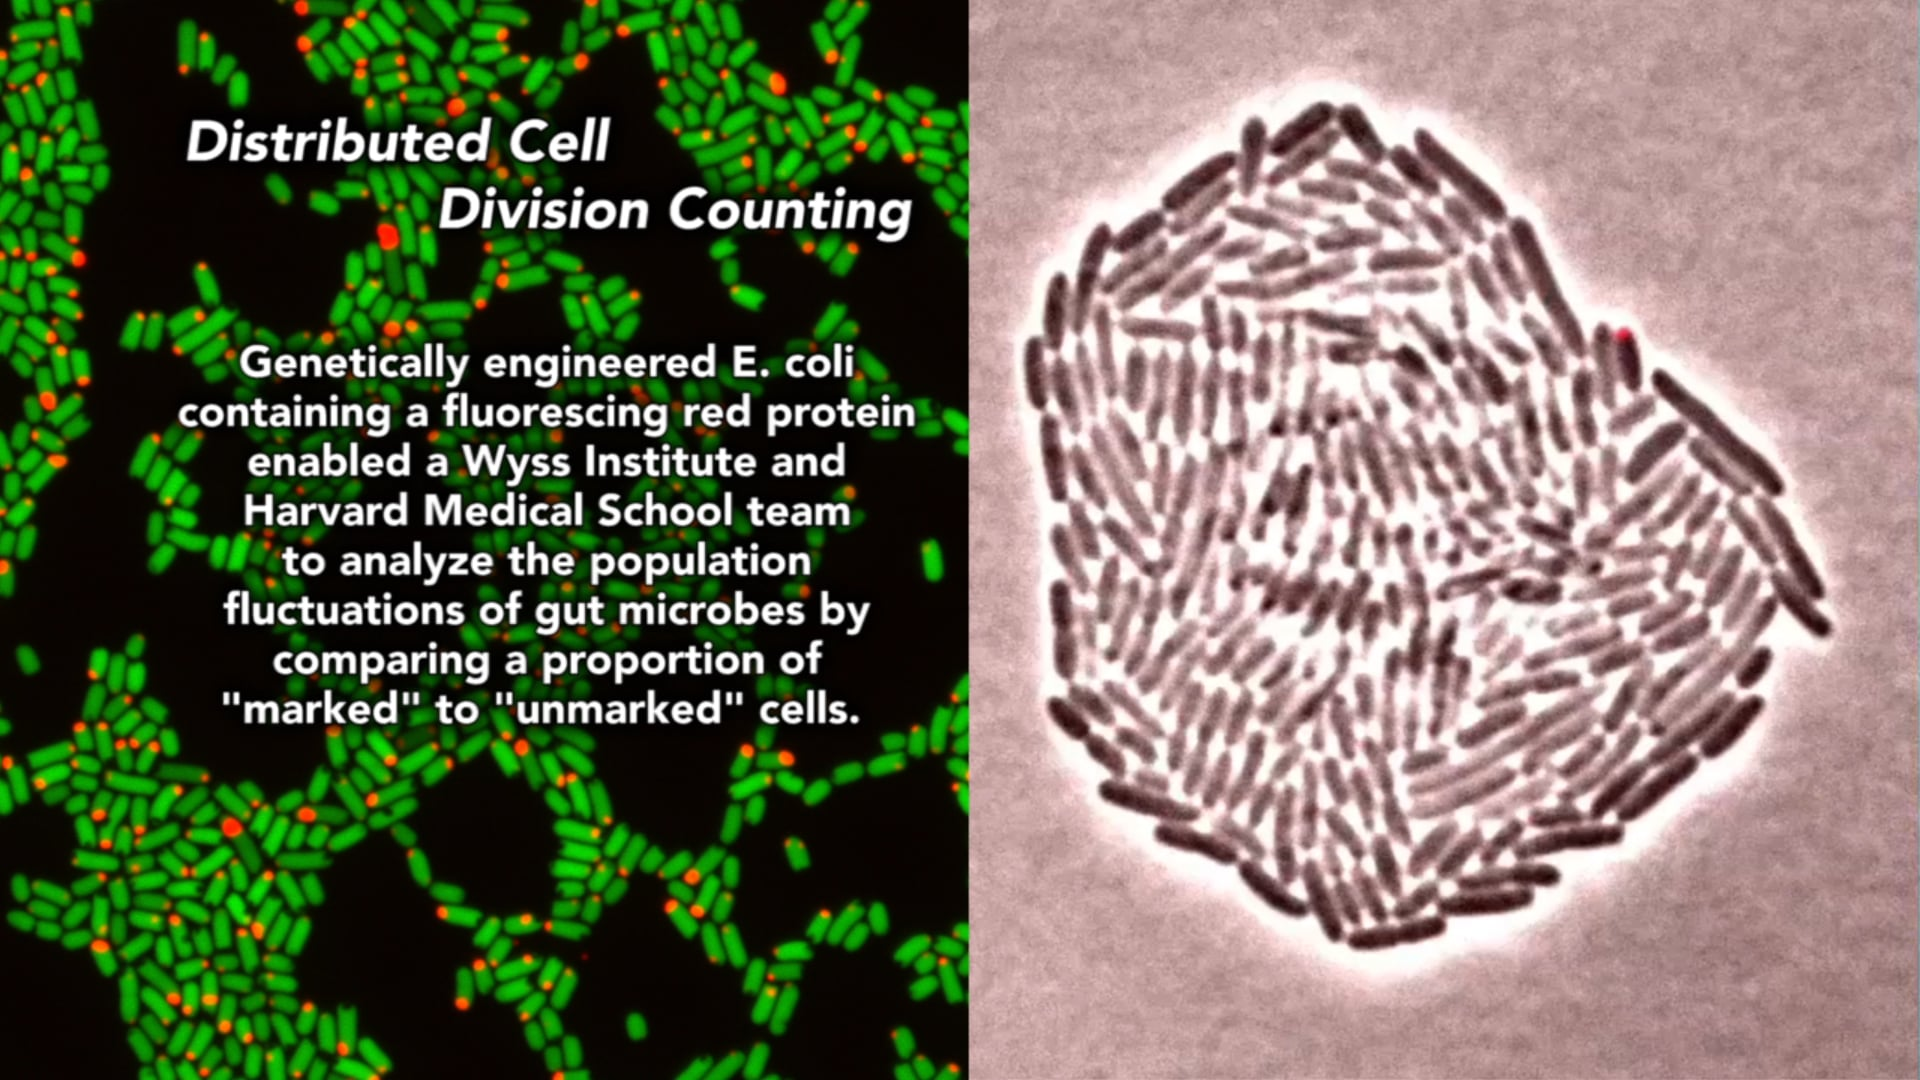 Distributed Cell Division Counter